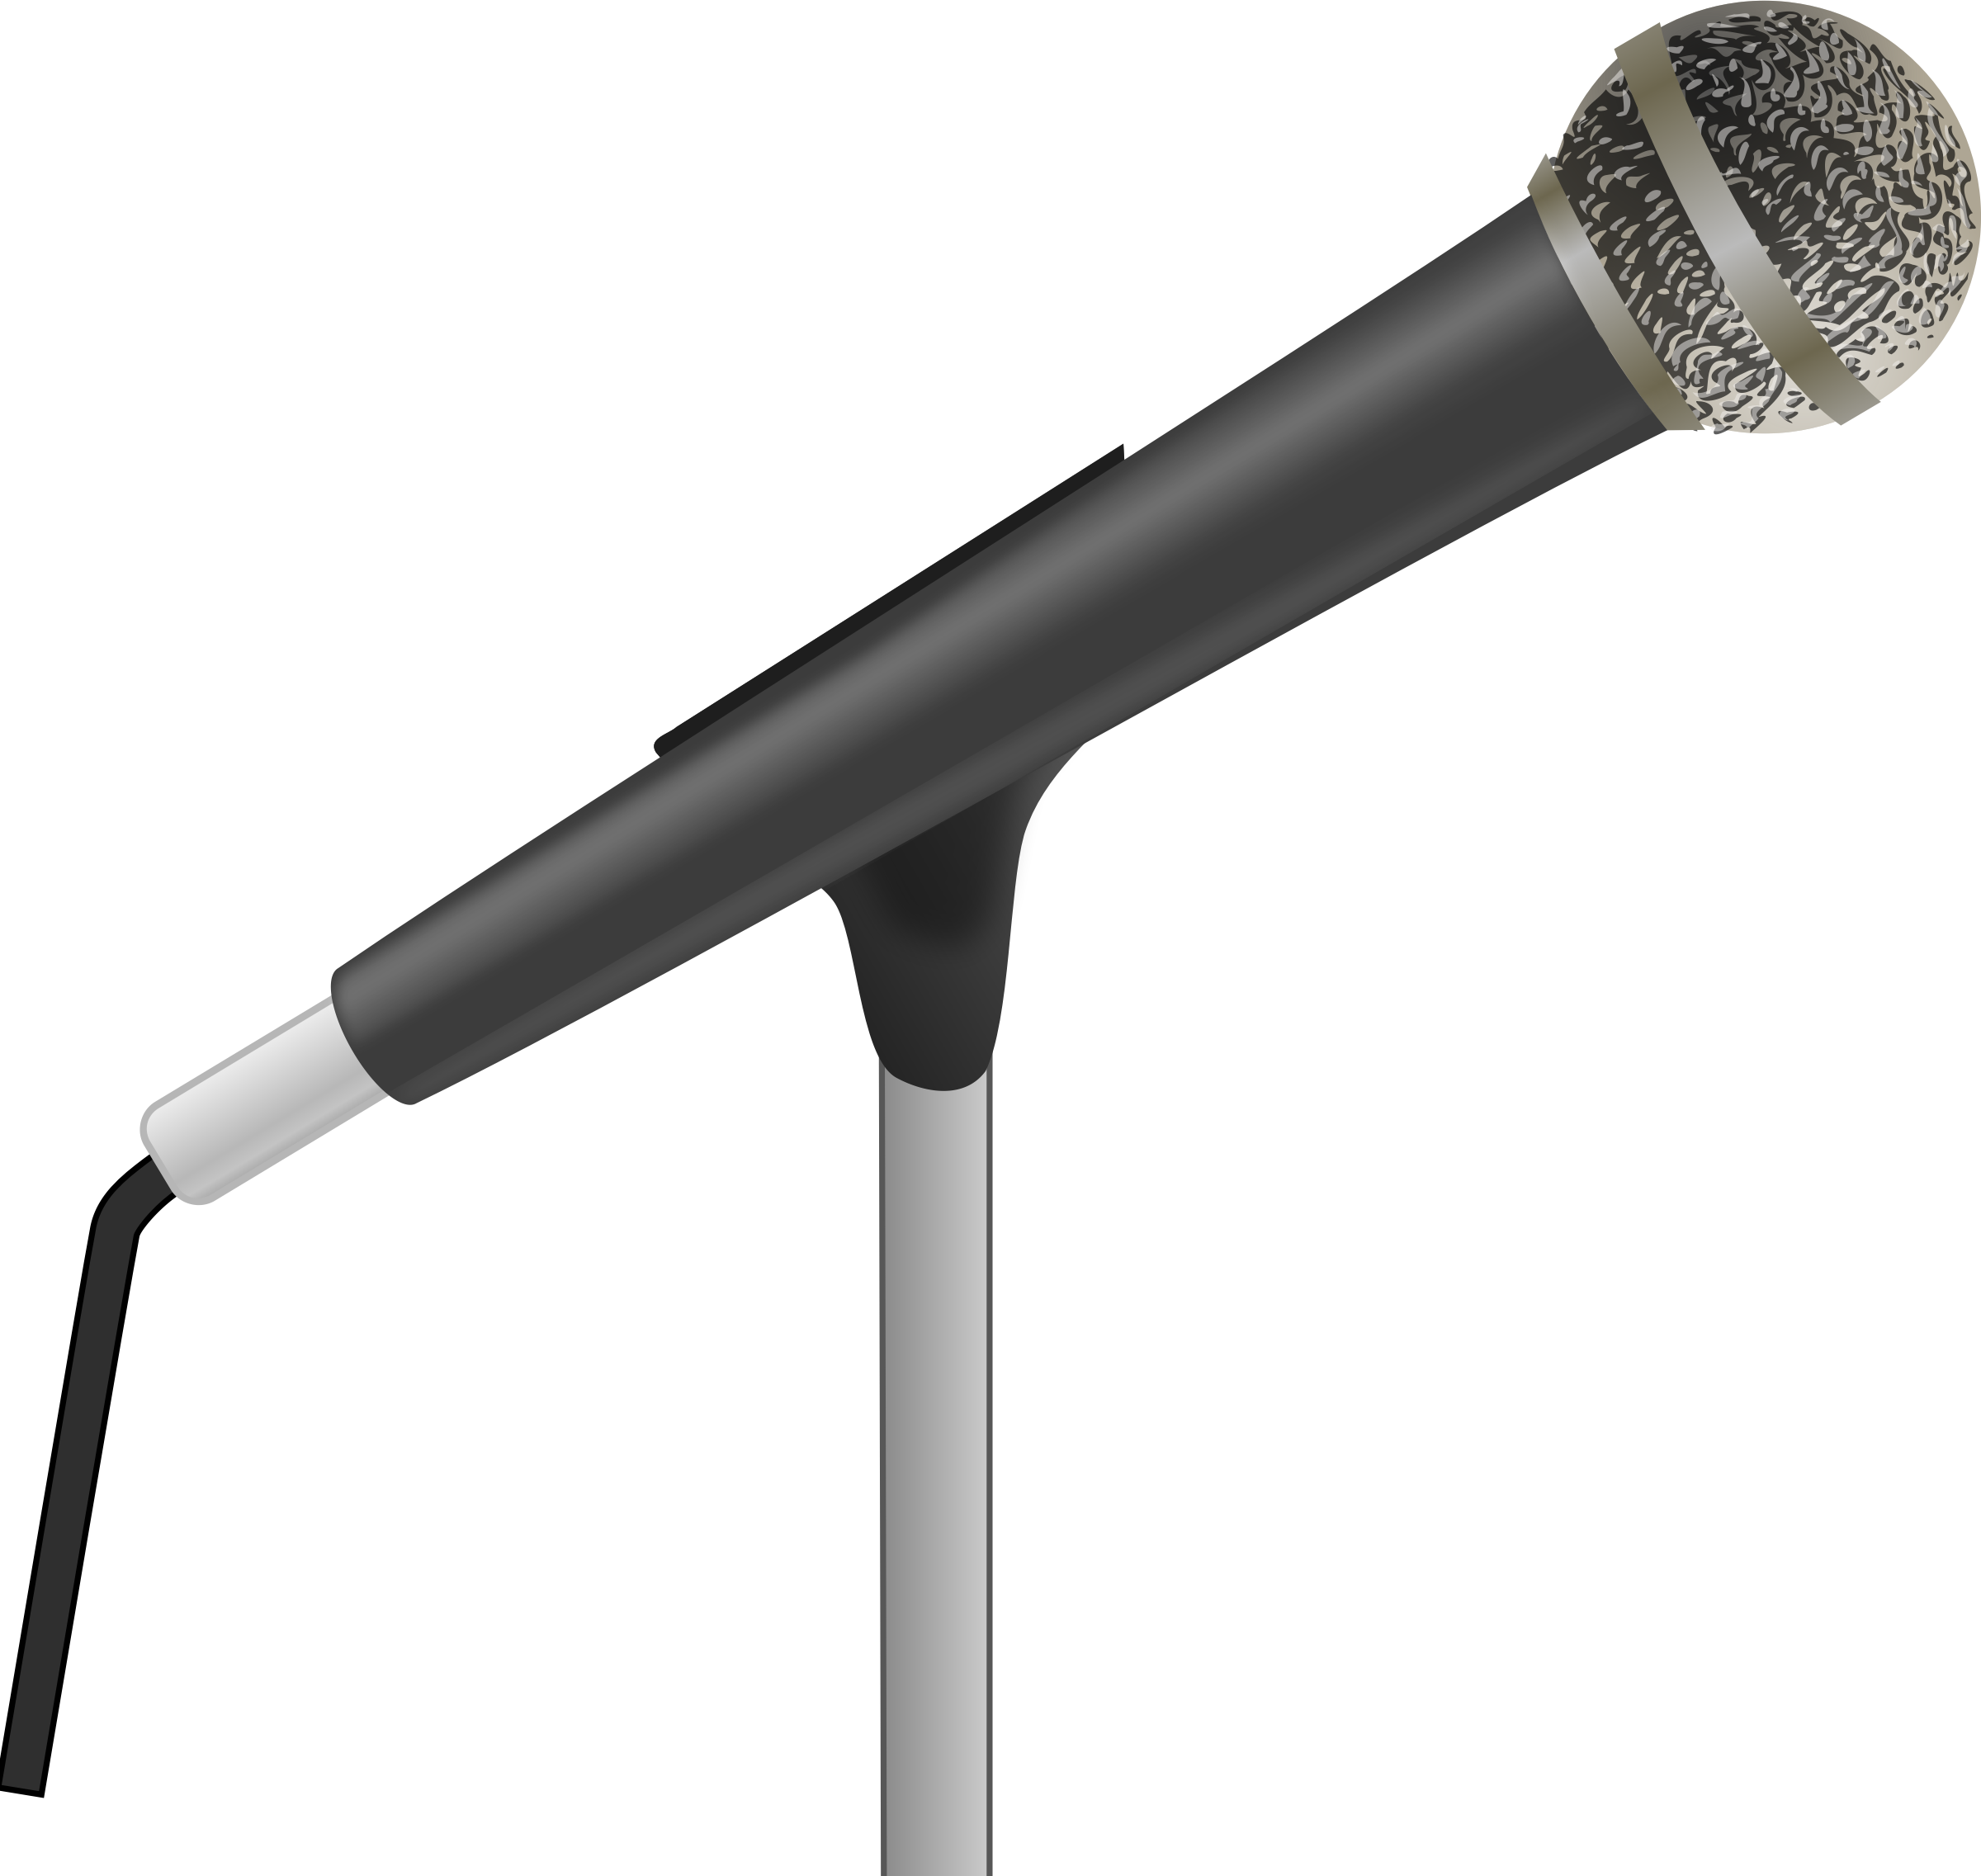 Microphone clipart comedy.